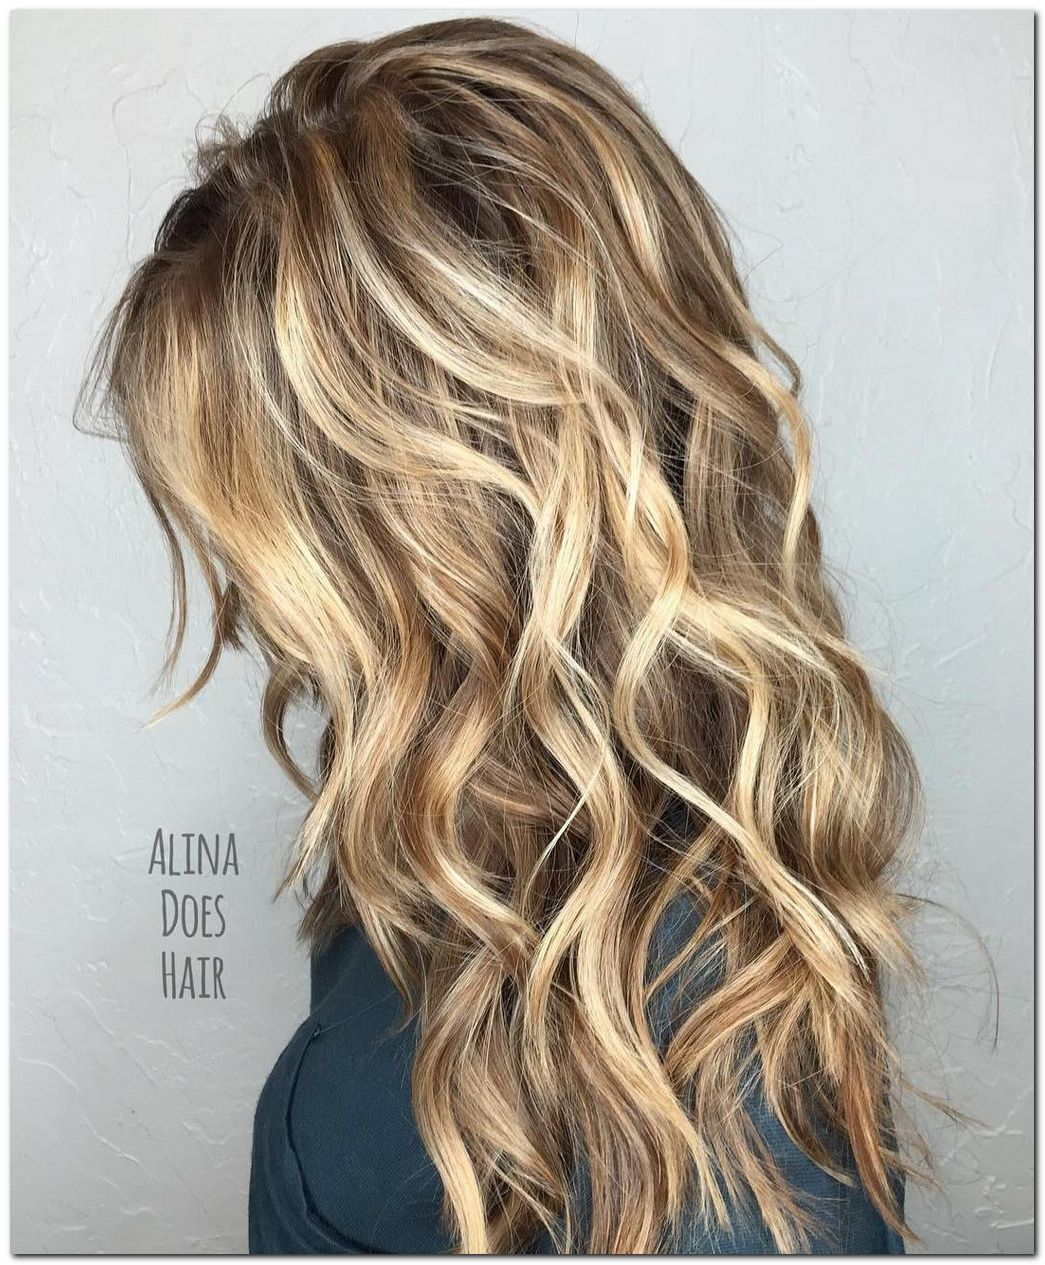 blonde hairstyles ideas blonde hairstyles and blondes